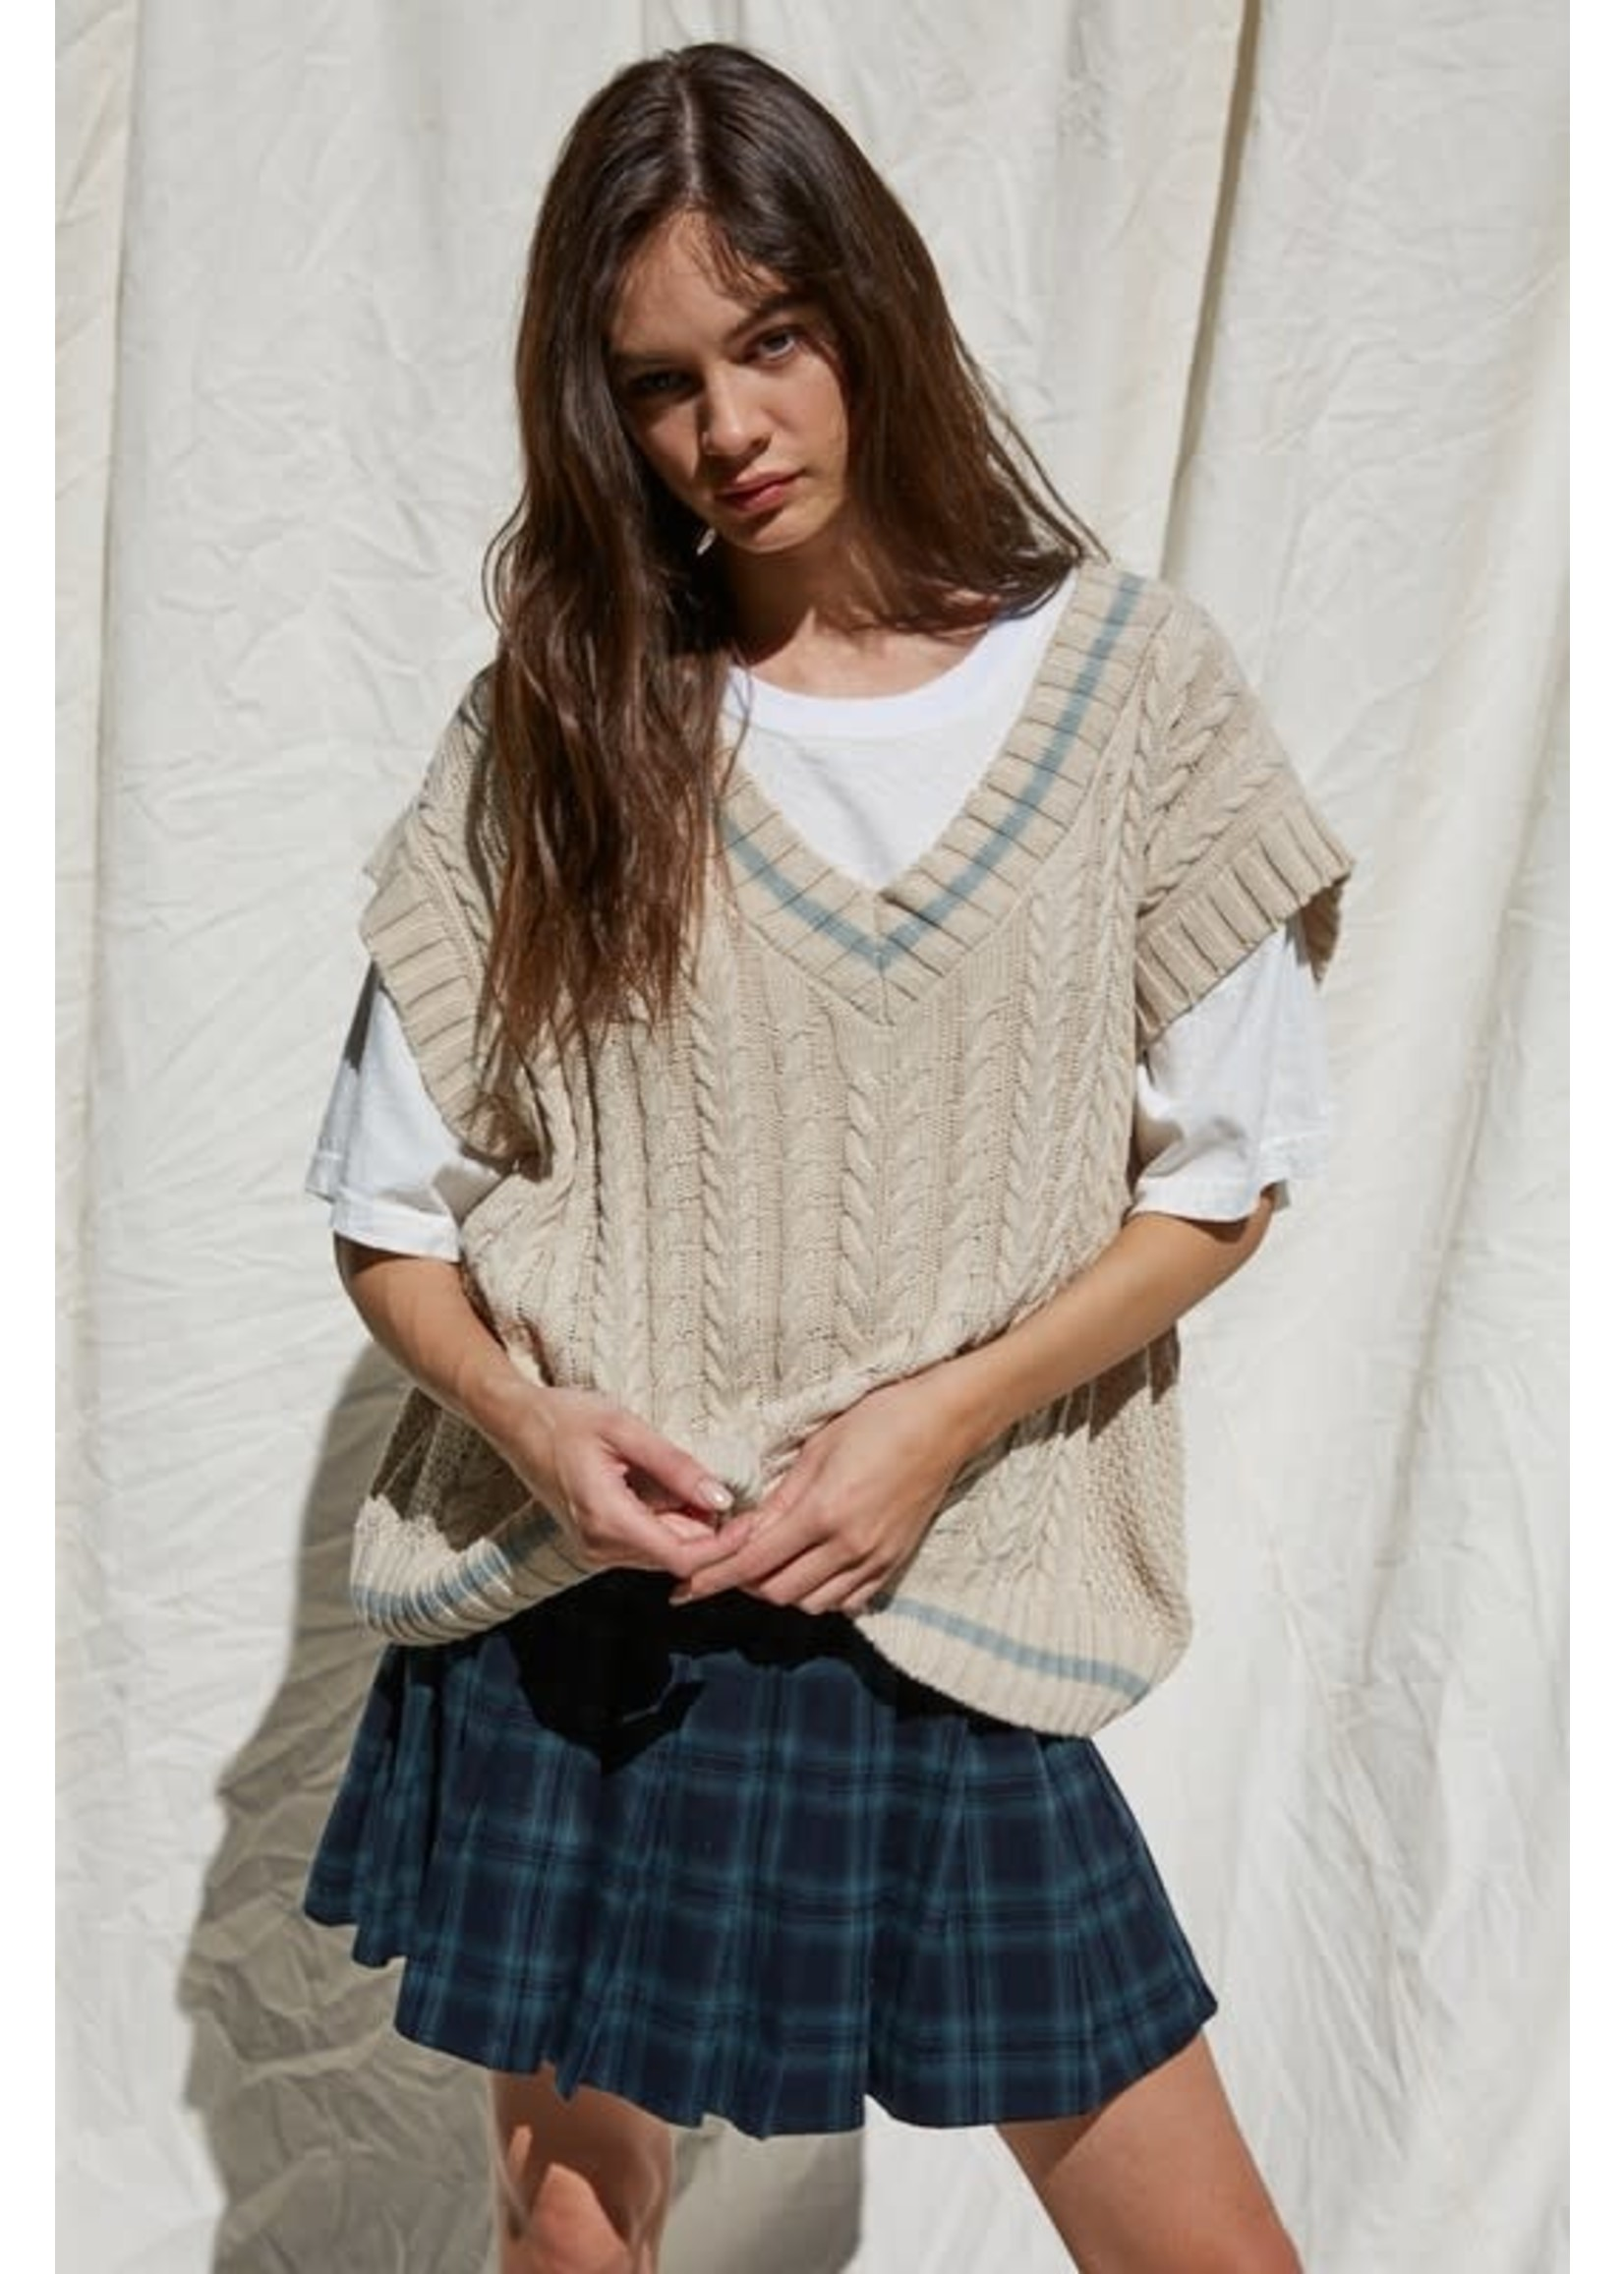 By Together Cable Knit Oversized Sweater Vest Top - L4923